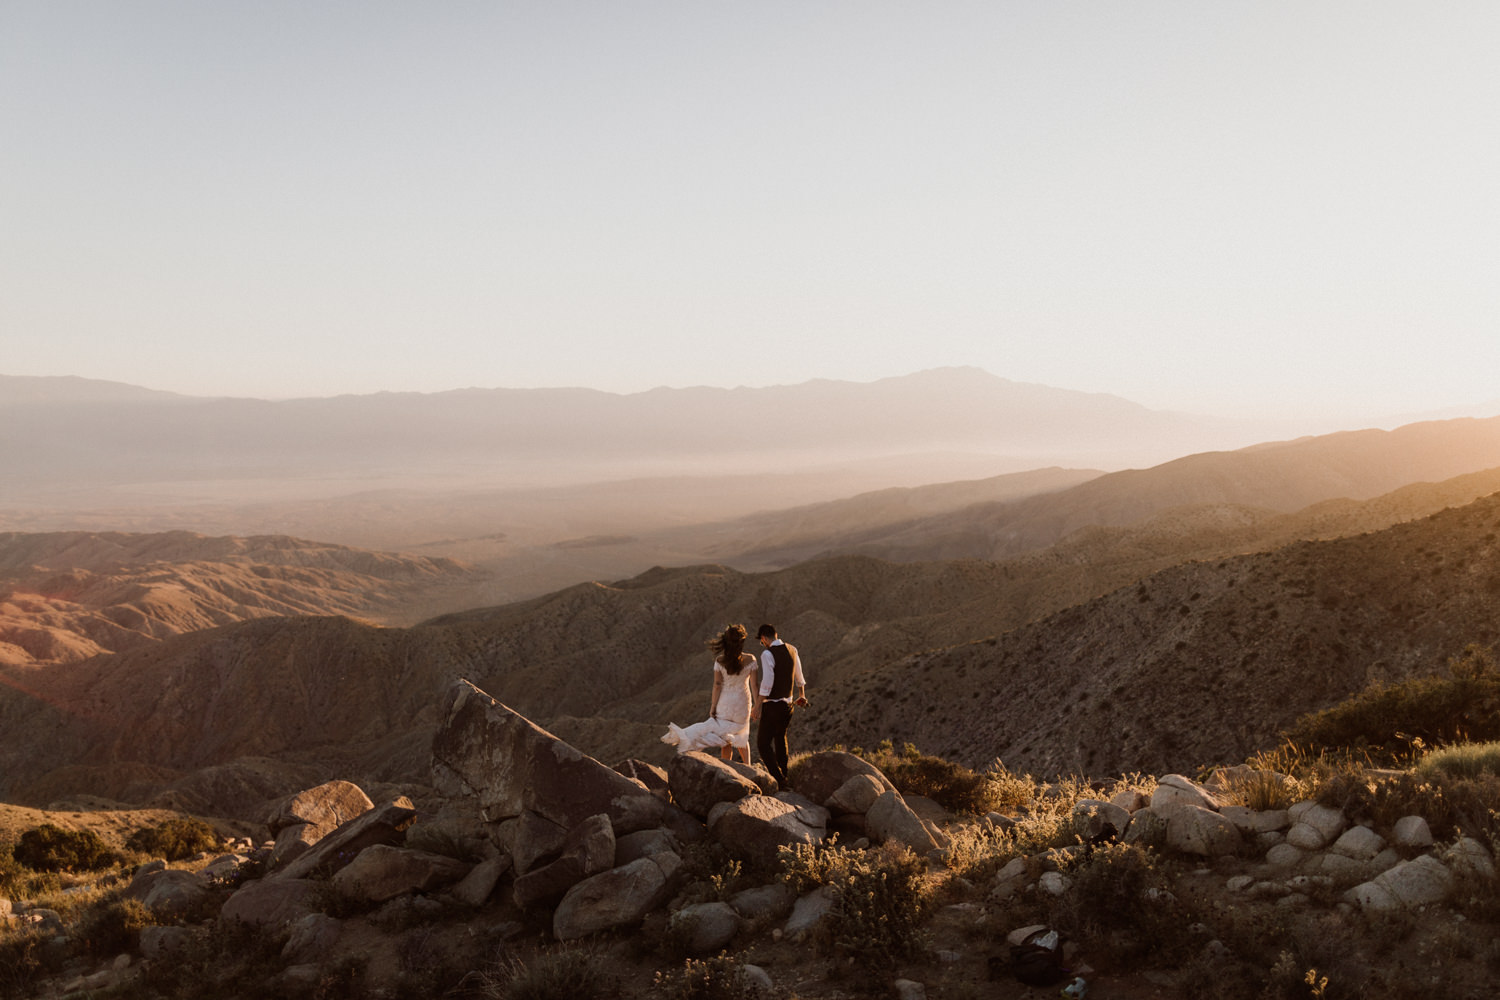 joshua-tree-national-park-elopement-36.jpg